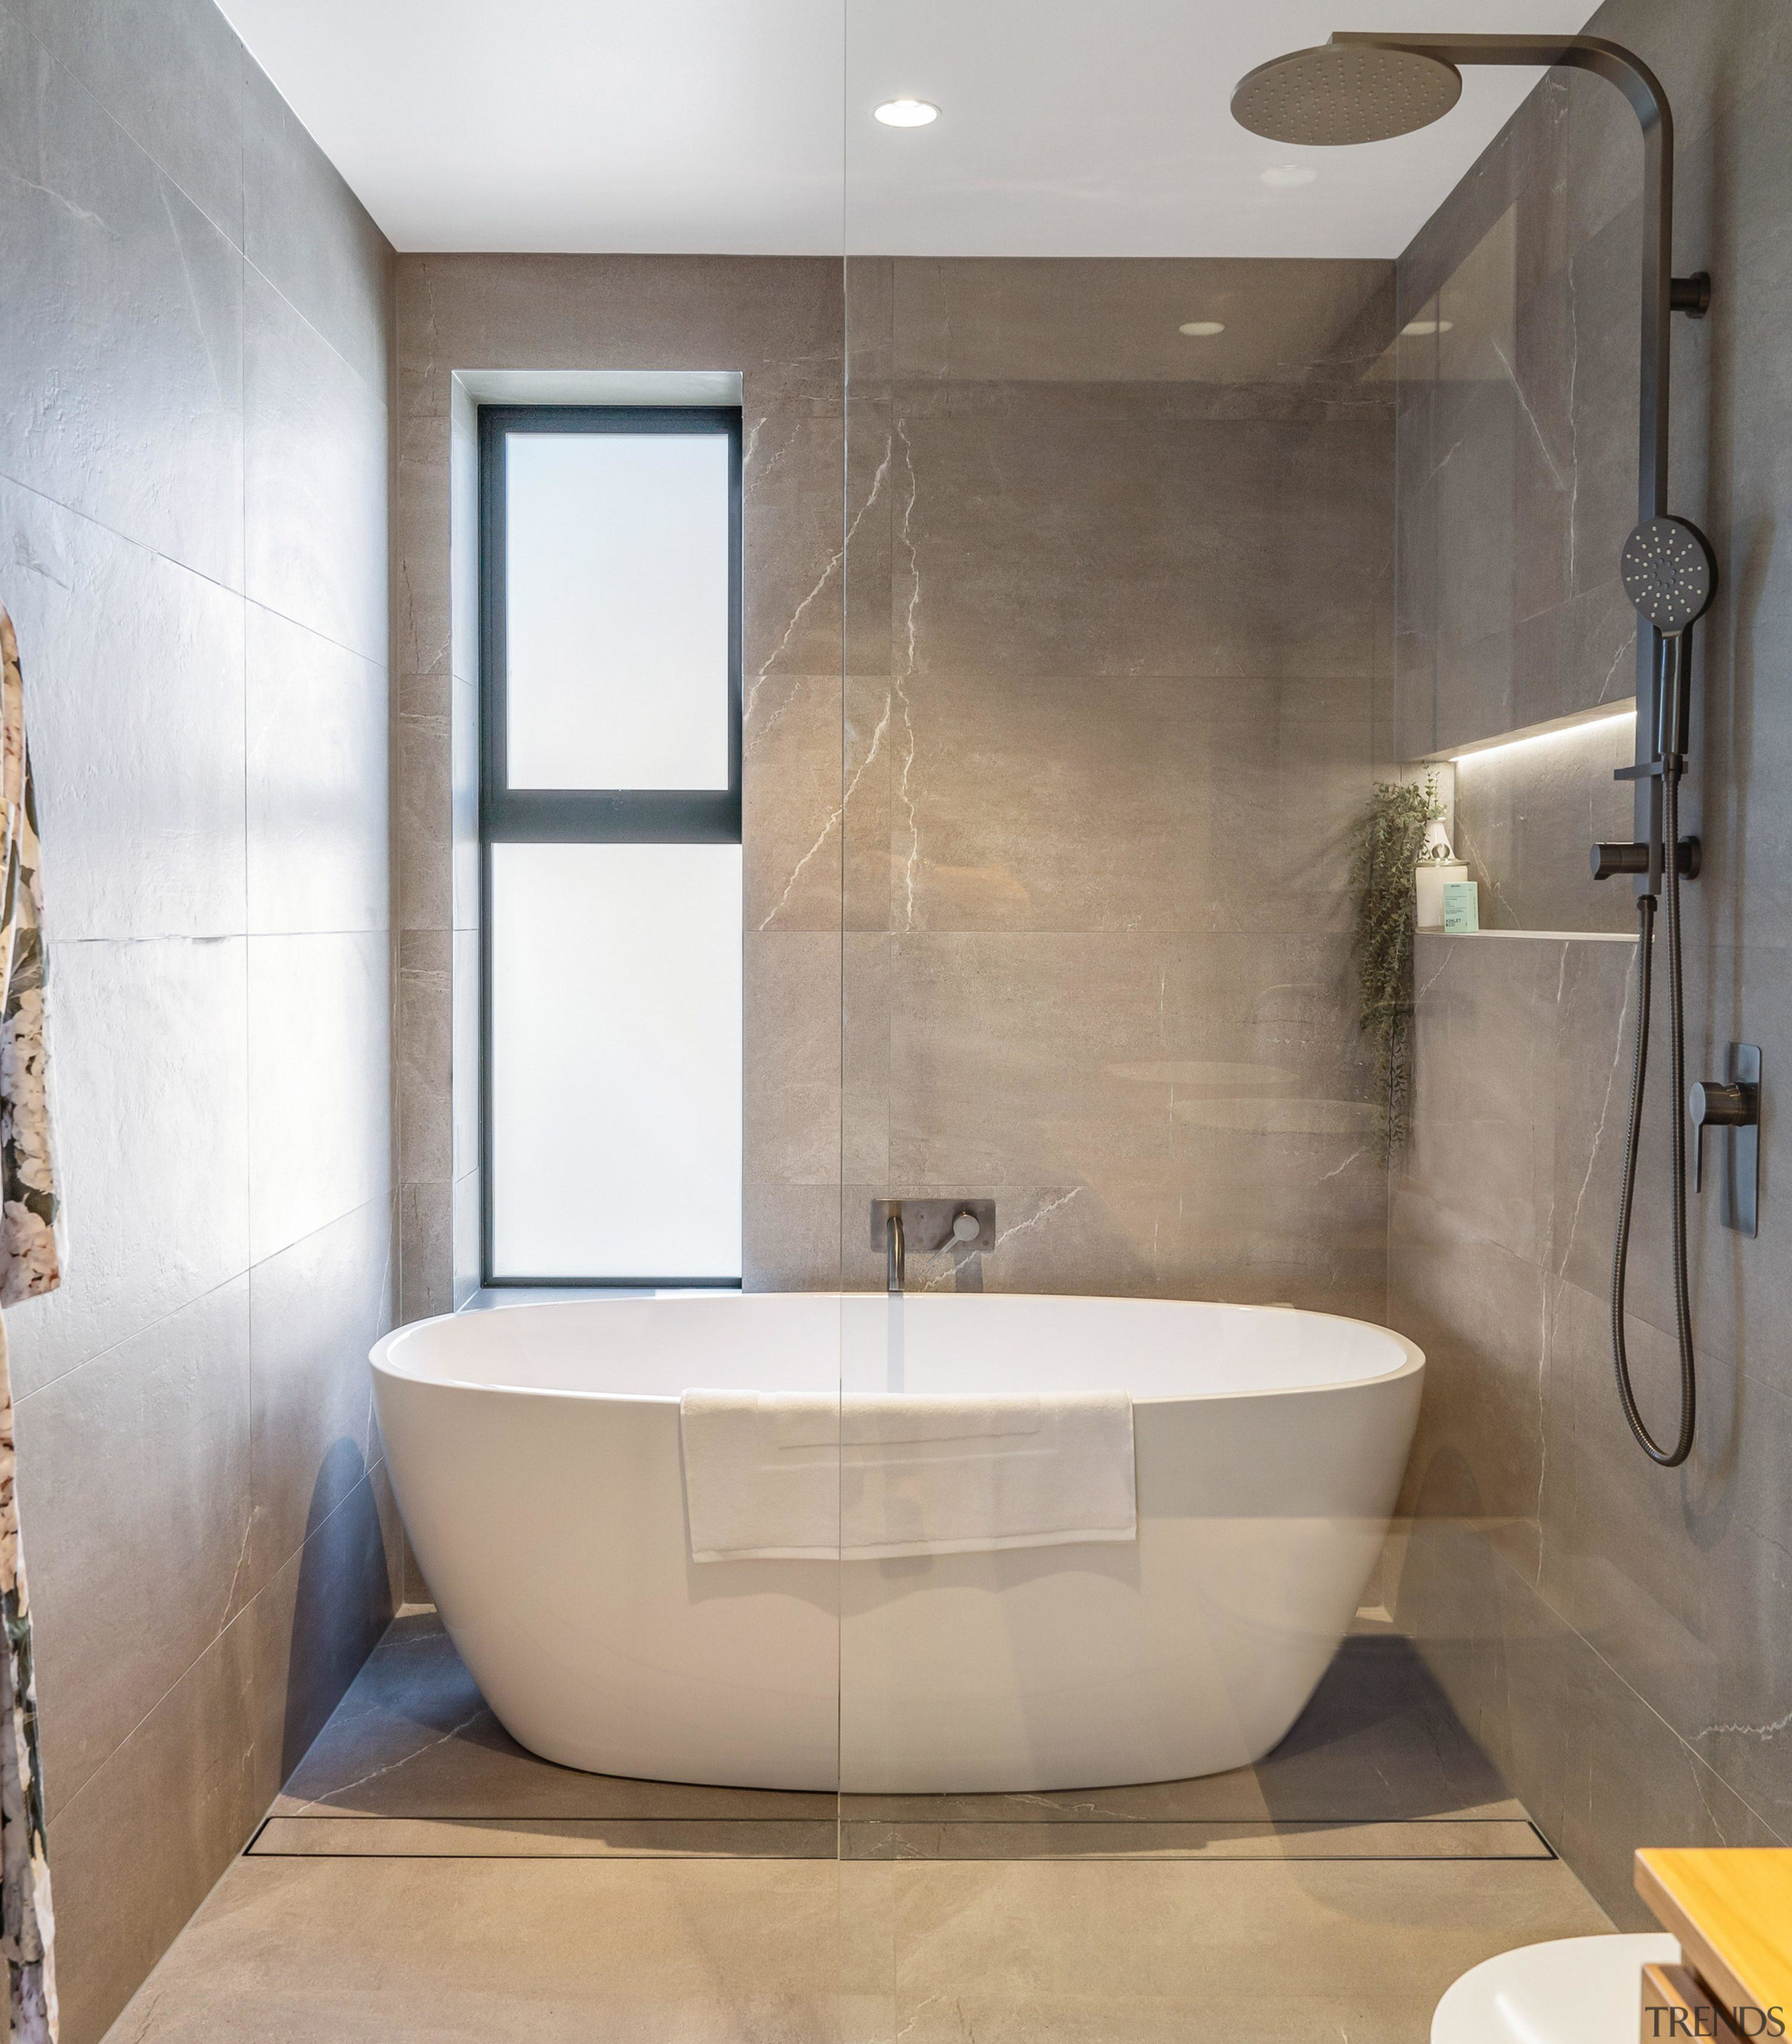 The freestanding tub is situated at the end